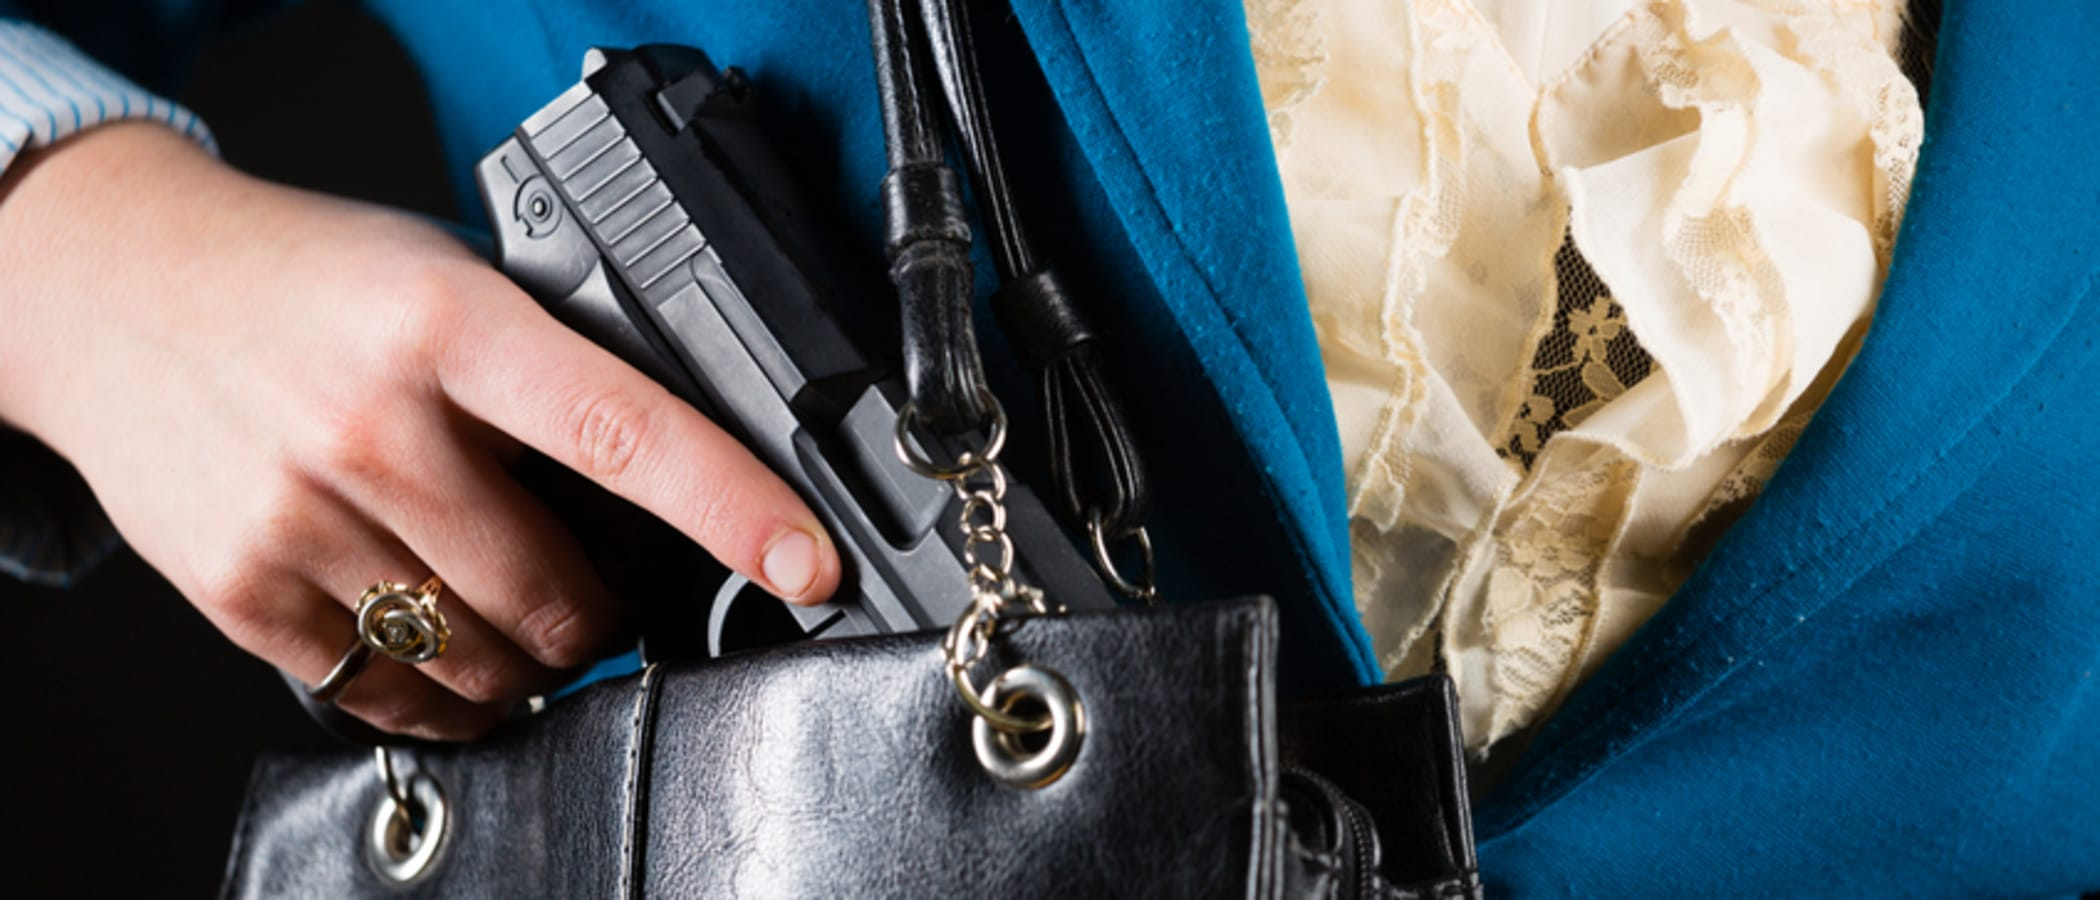 How to Respond to Employees Who Want to Bring Guns to Work